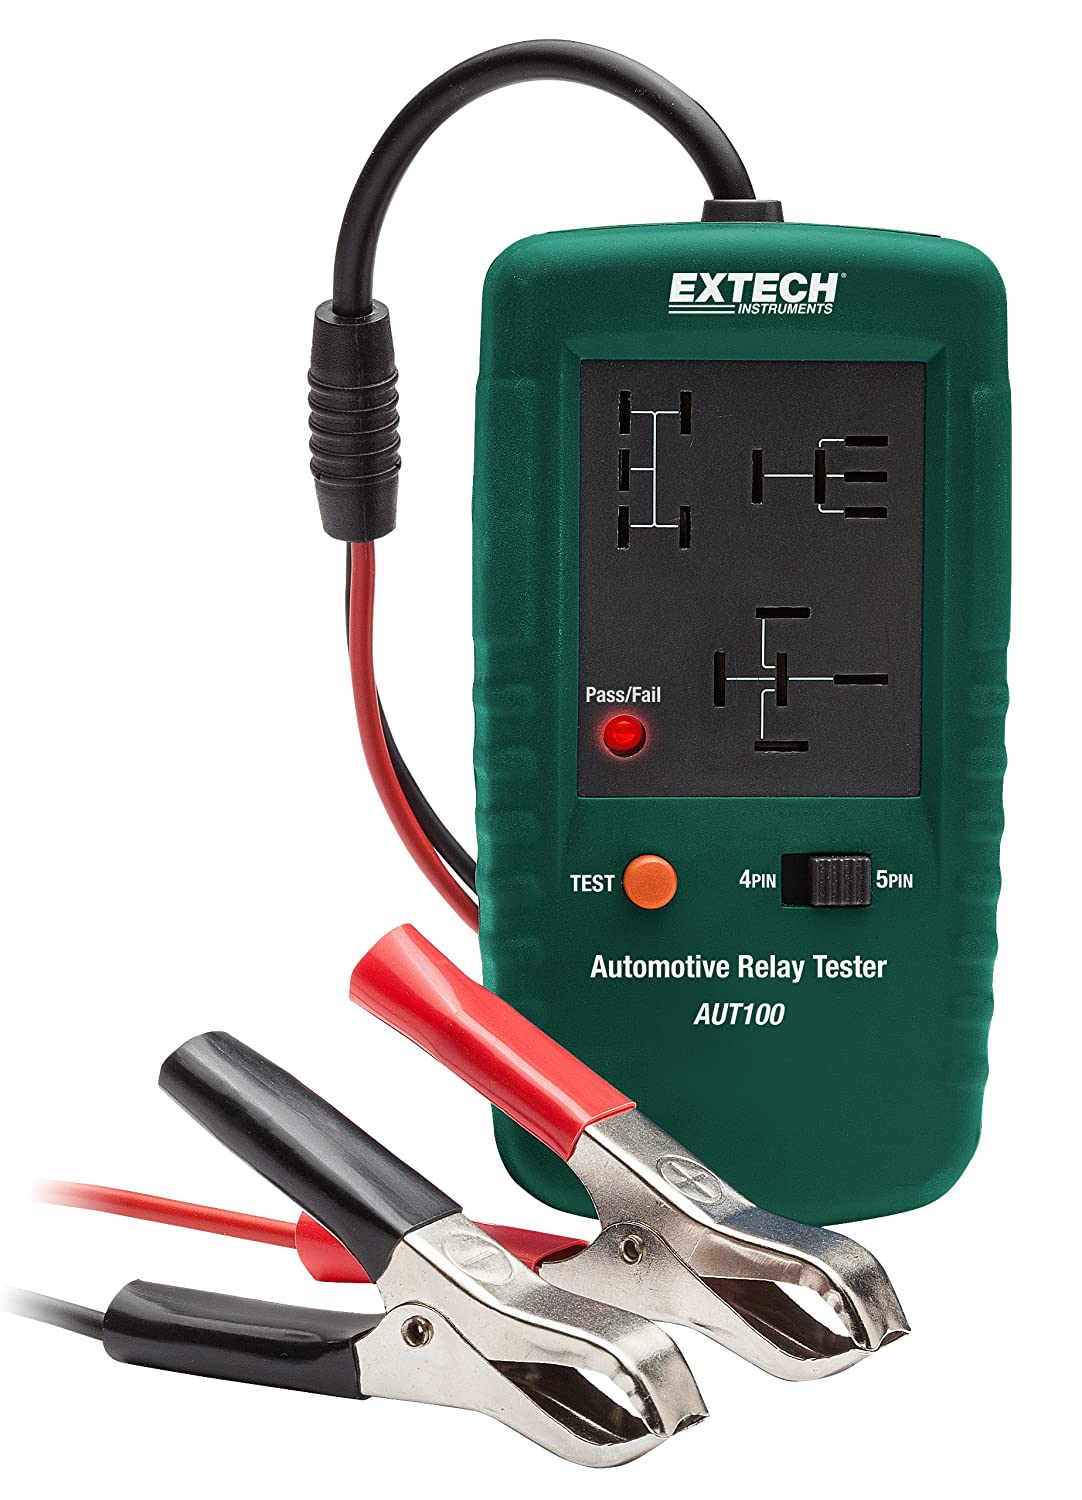 Amazoncom Extech AUT Automotive Relay Tester Home Improvement - How to test 12v 5 pin relay